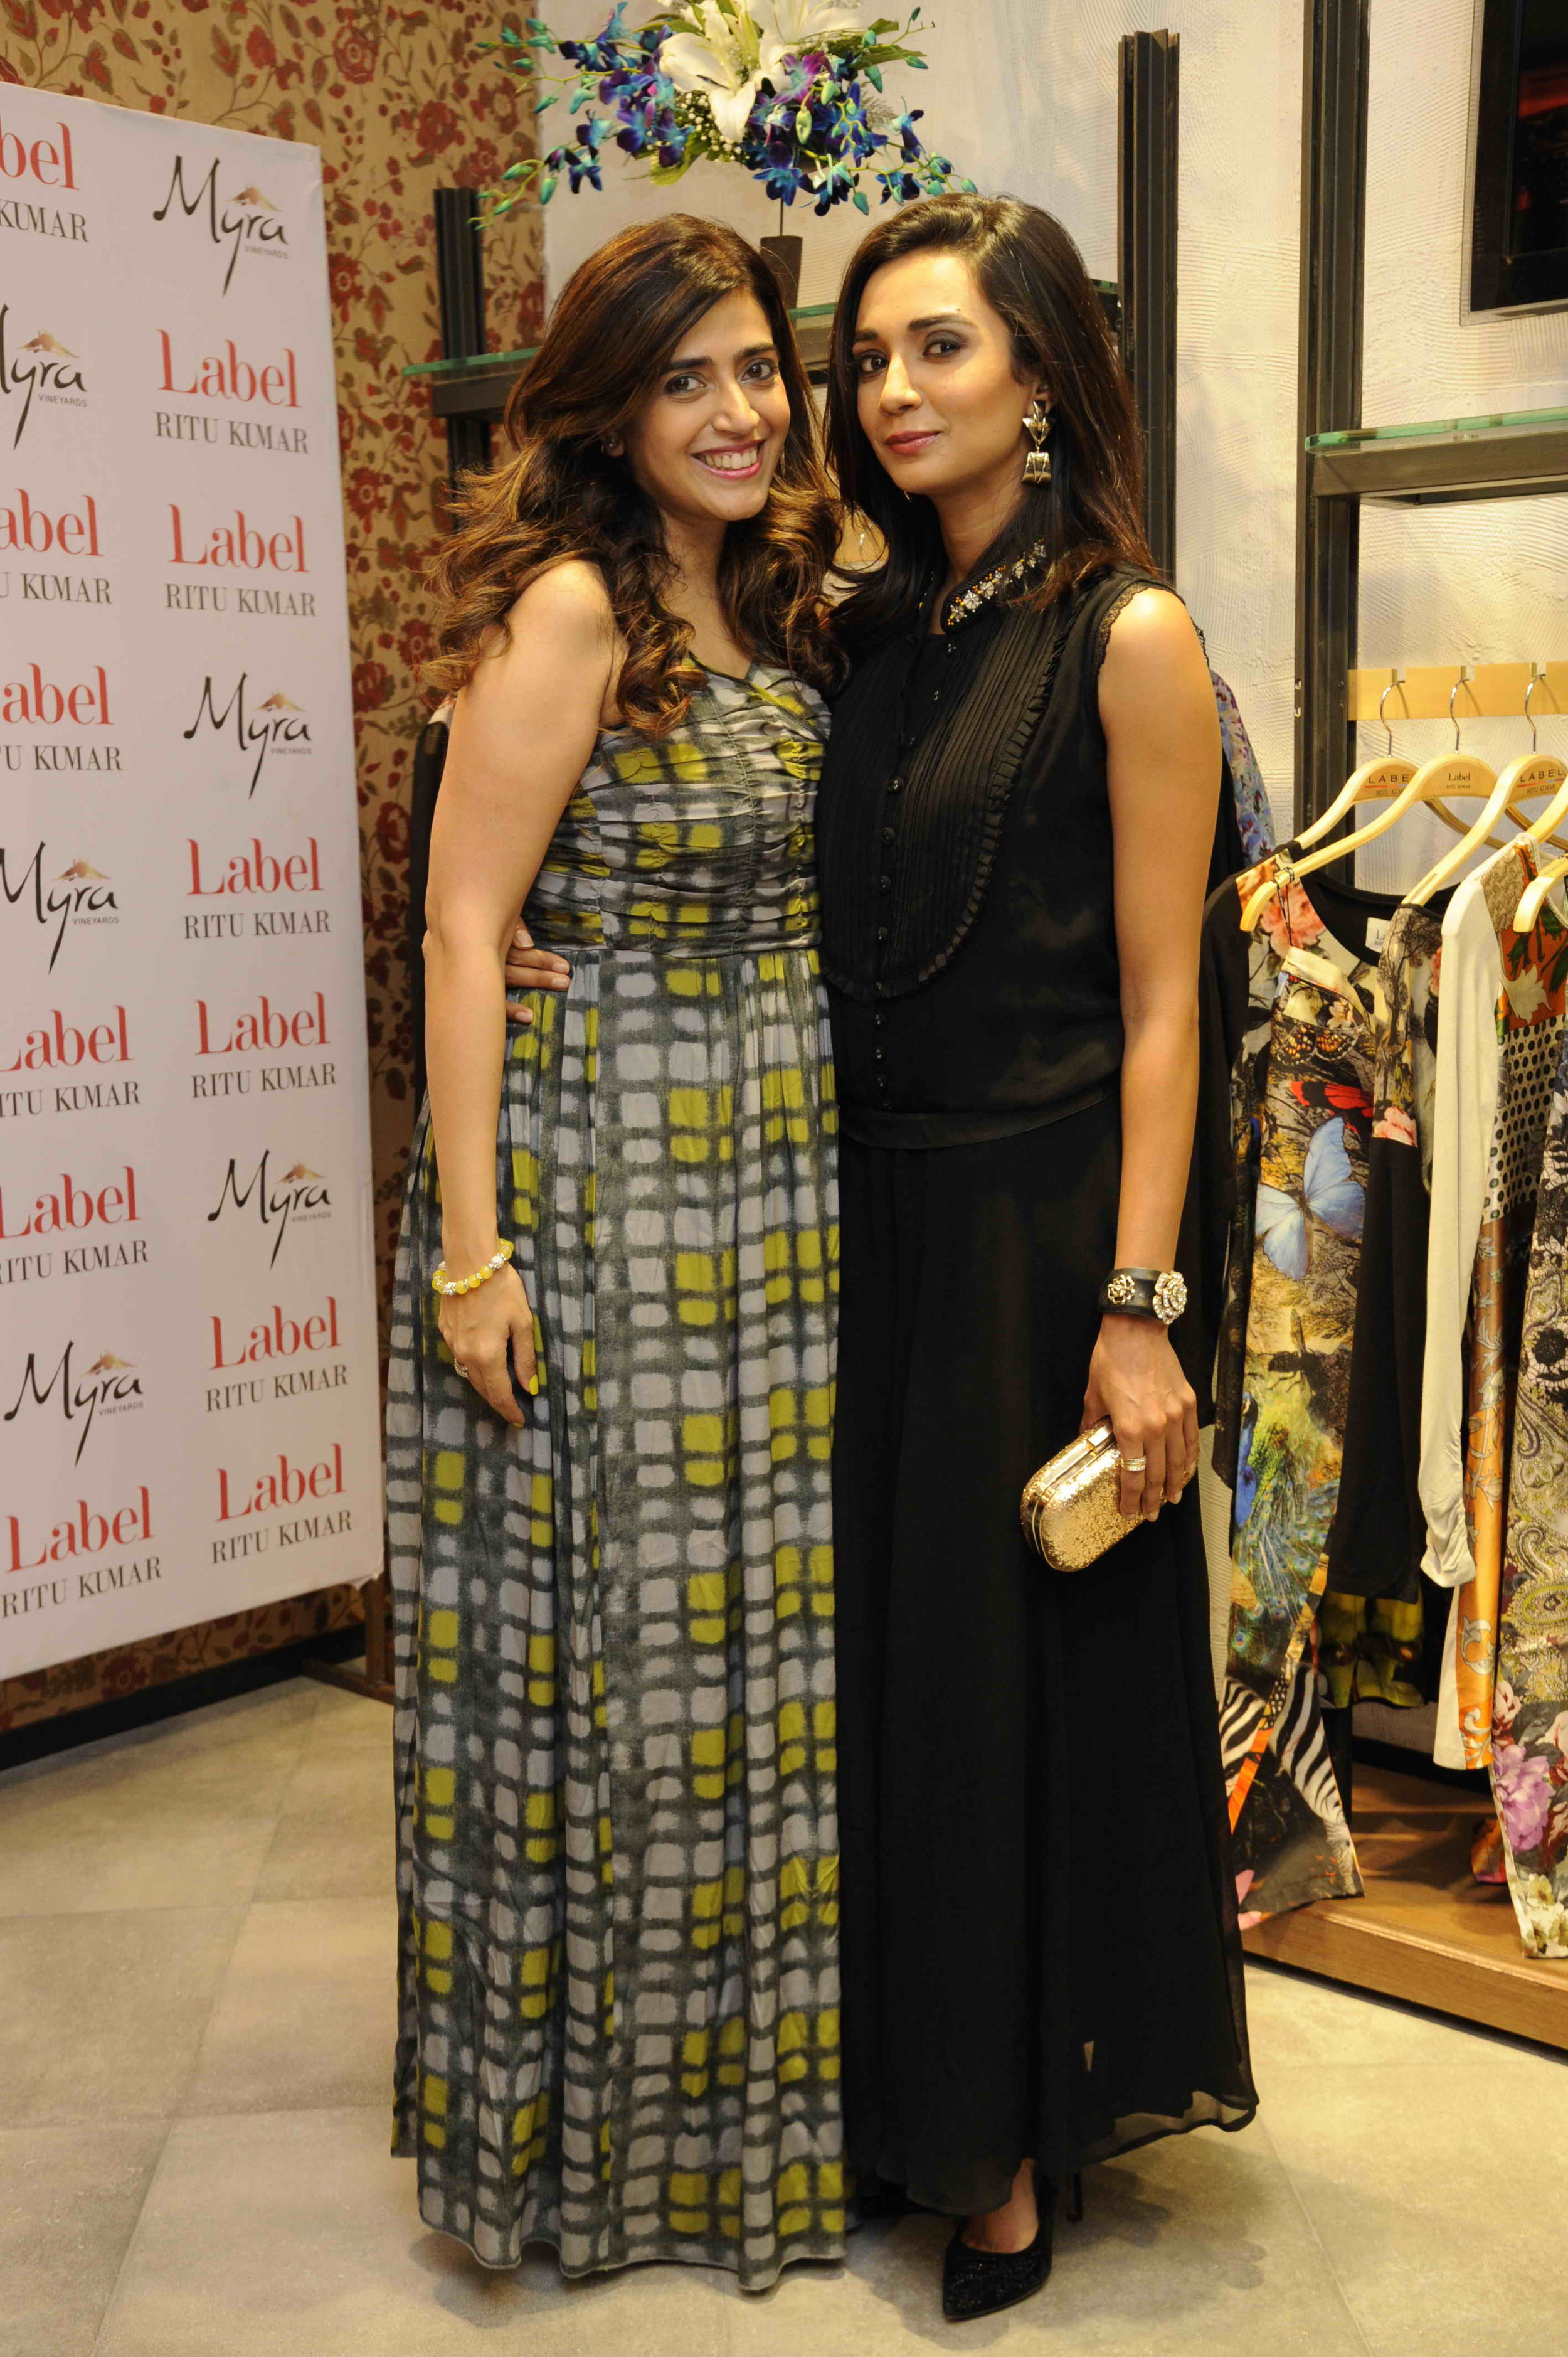 label-ritu-kumar-palladium-launch-12.jpg